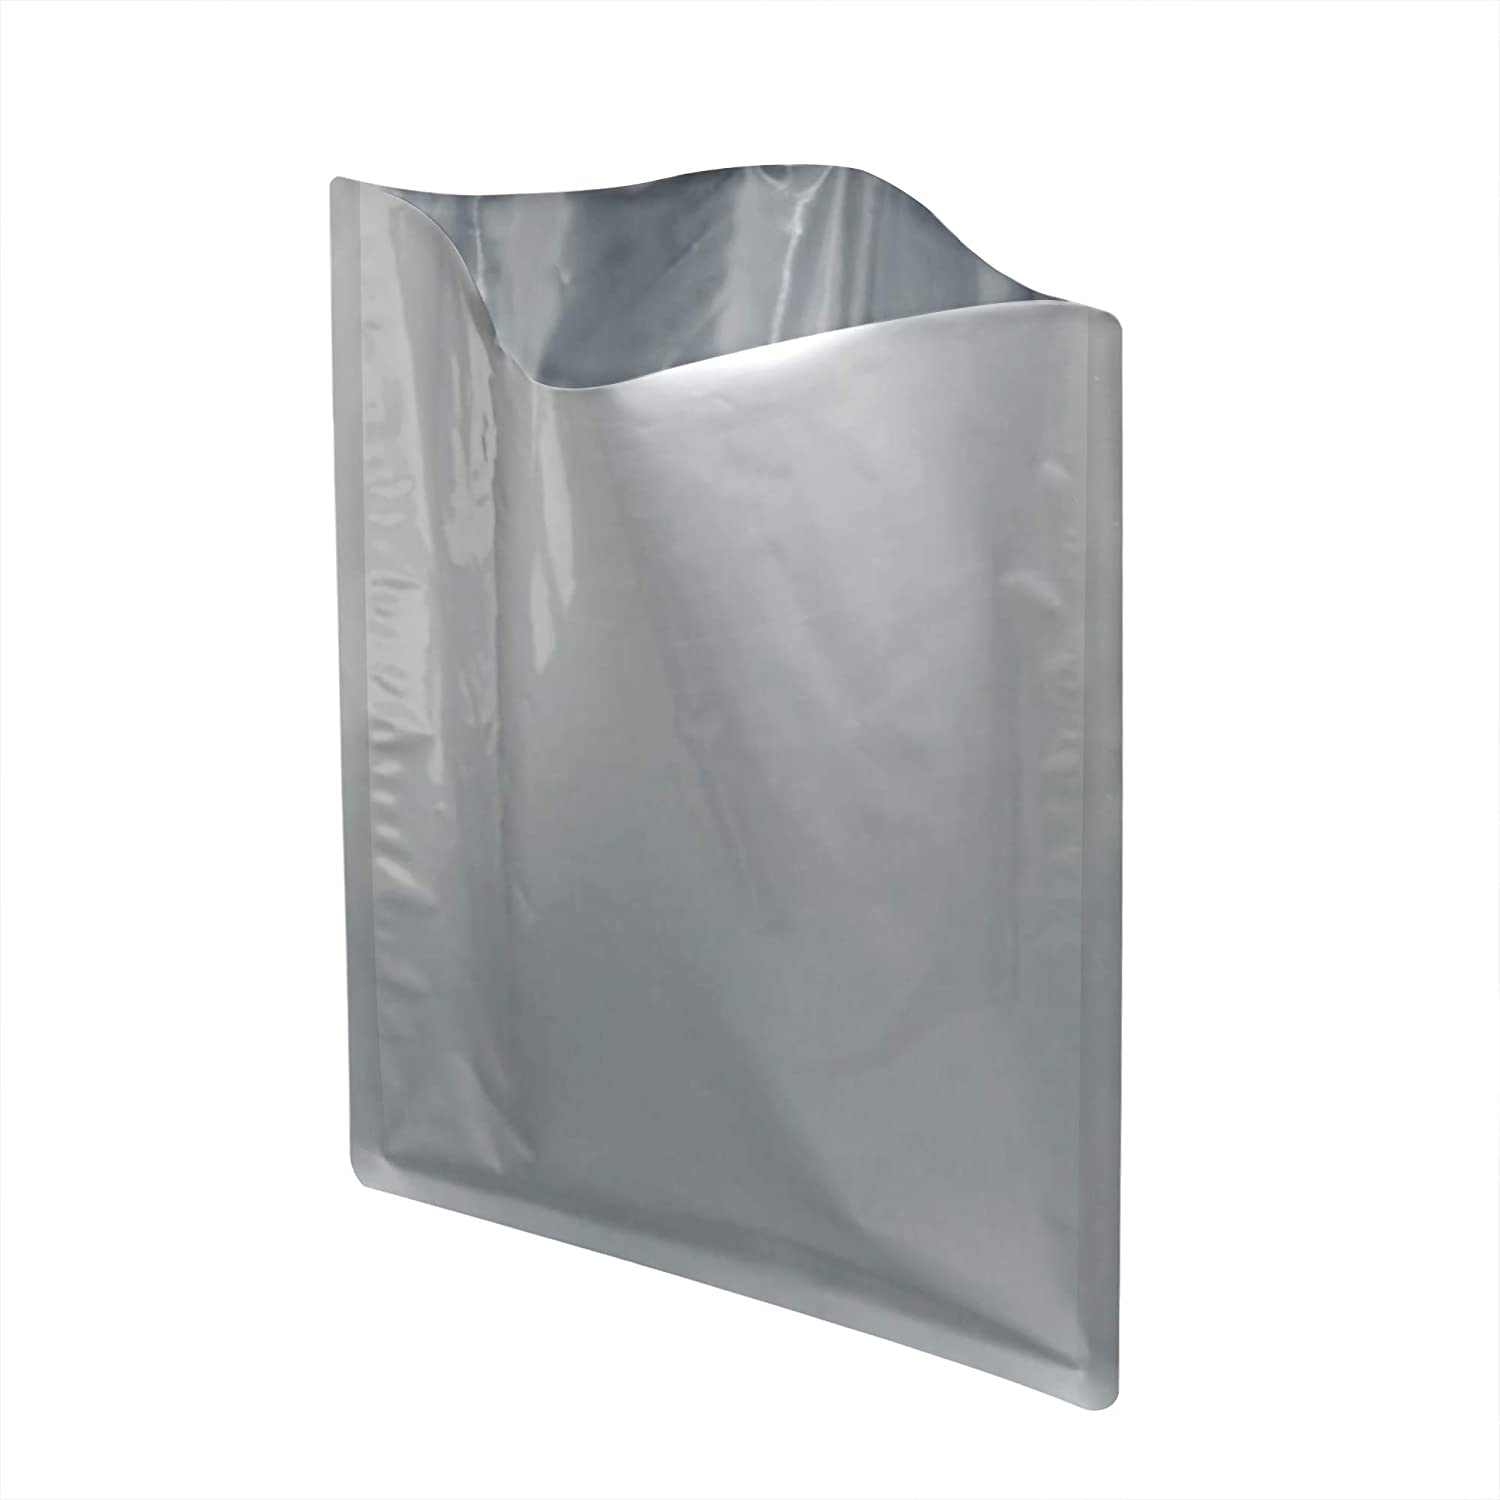 50 Packs 1 Gallon Mylar Bags for Dehydrated Vegetables, Grains, Legumes and Emergency Long Term Food Storage, Food Grade